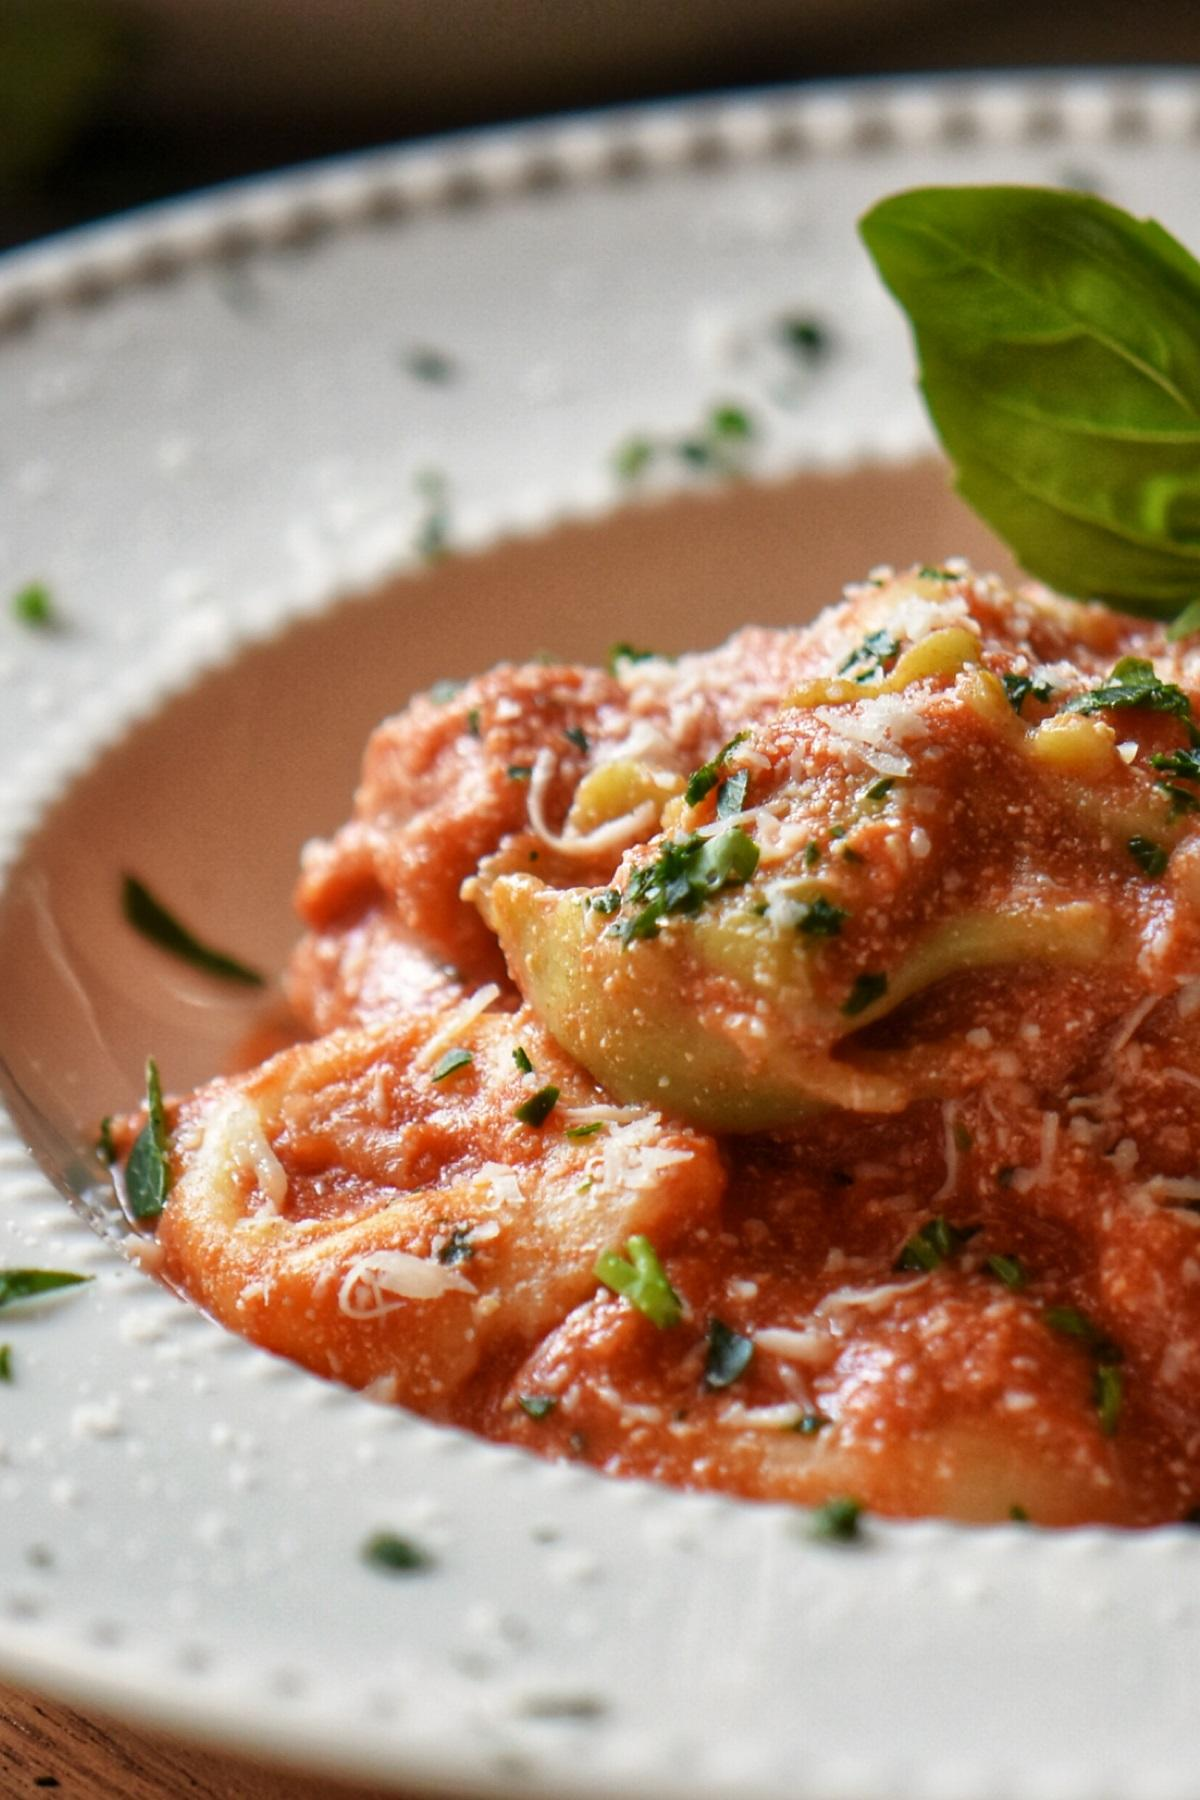 Tortellini with Creamy Tomato Sauce in a white dish.